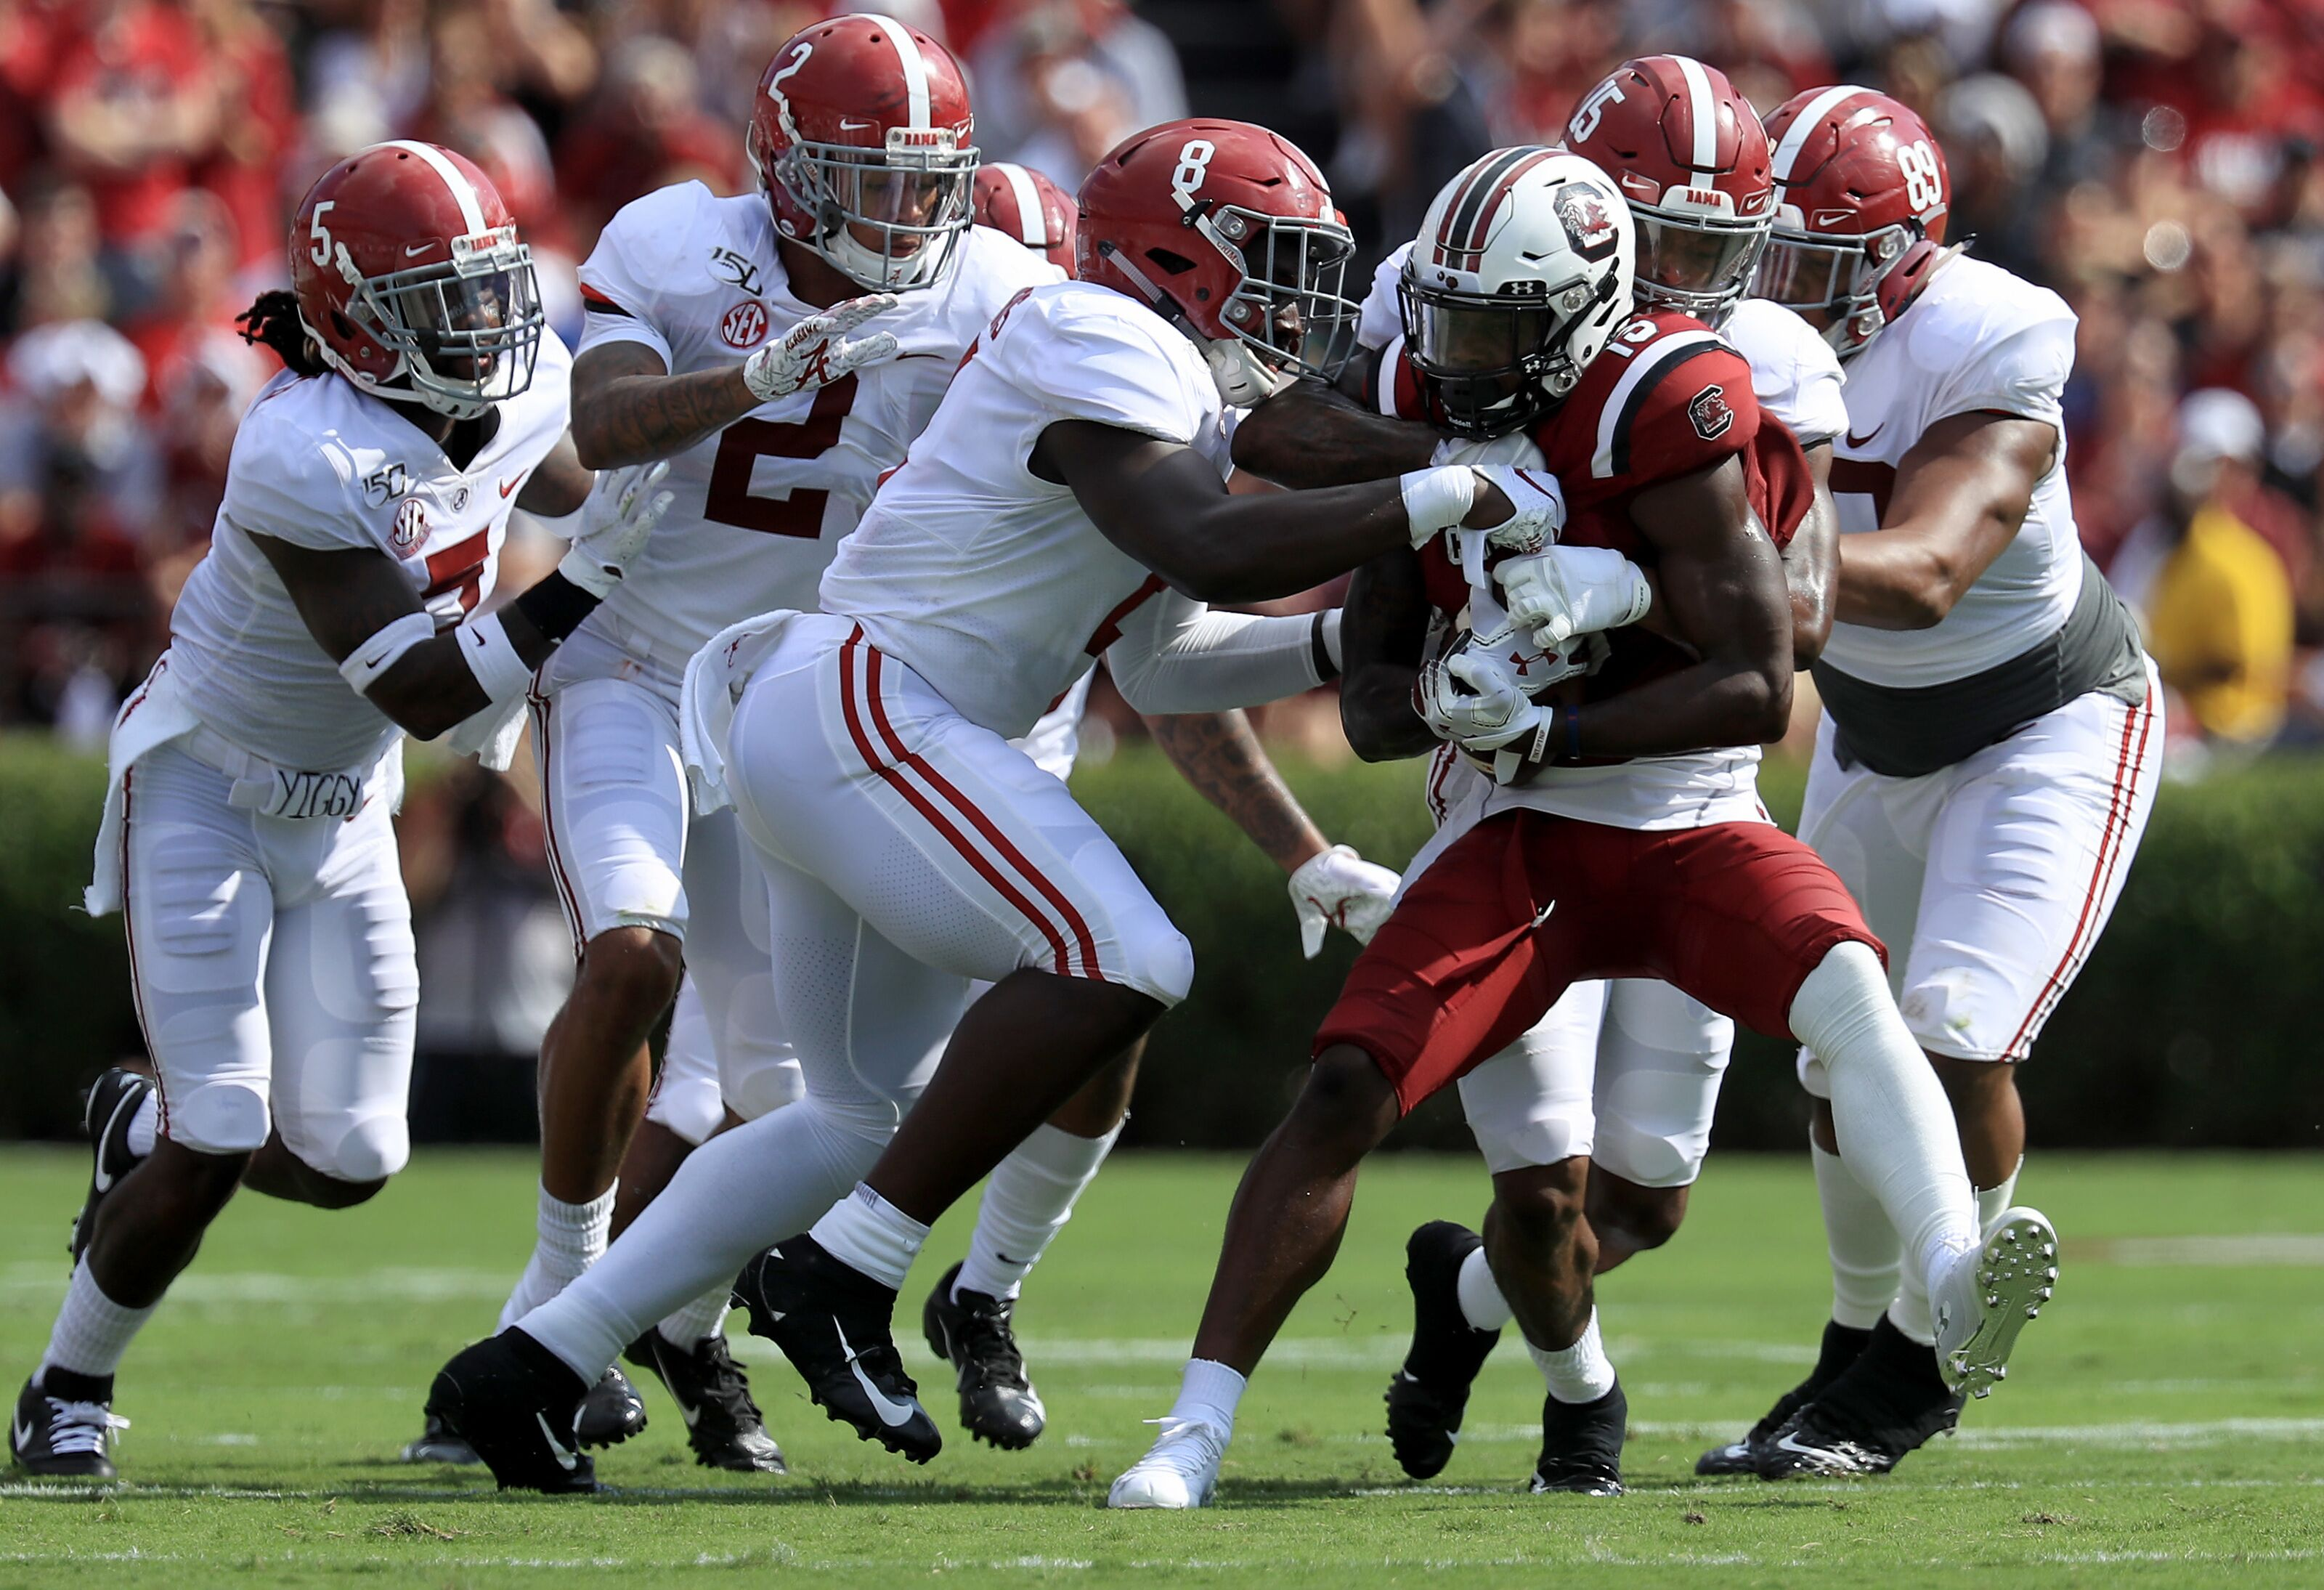 As injuries mount, it's time to be concerned about Alabama's defense